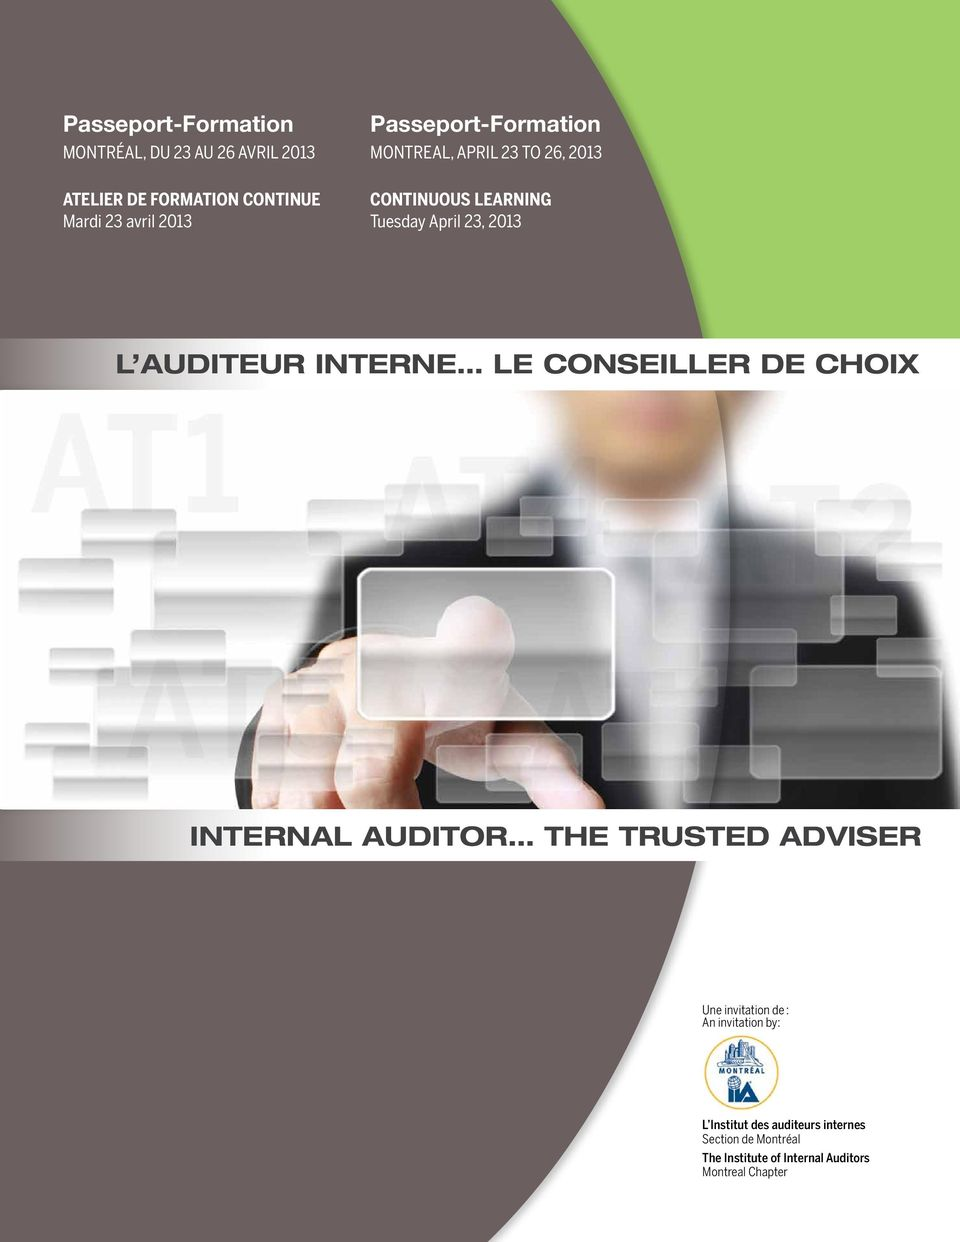 interne Le conseiller de choix internal auditor the trusted adviser Une invitation de : An invitation